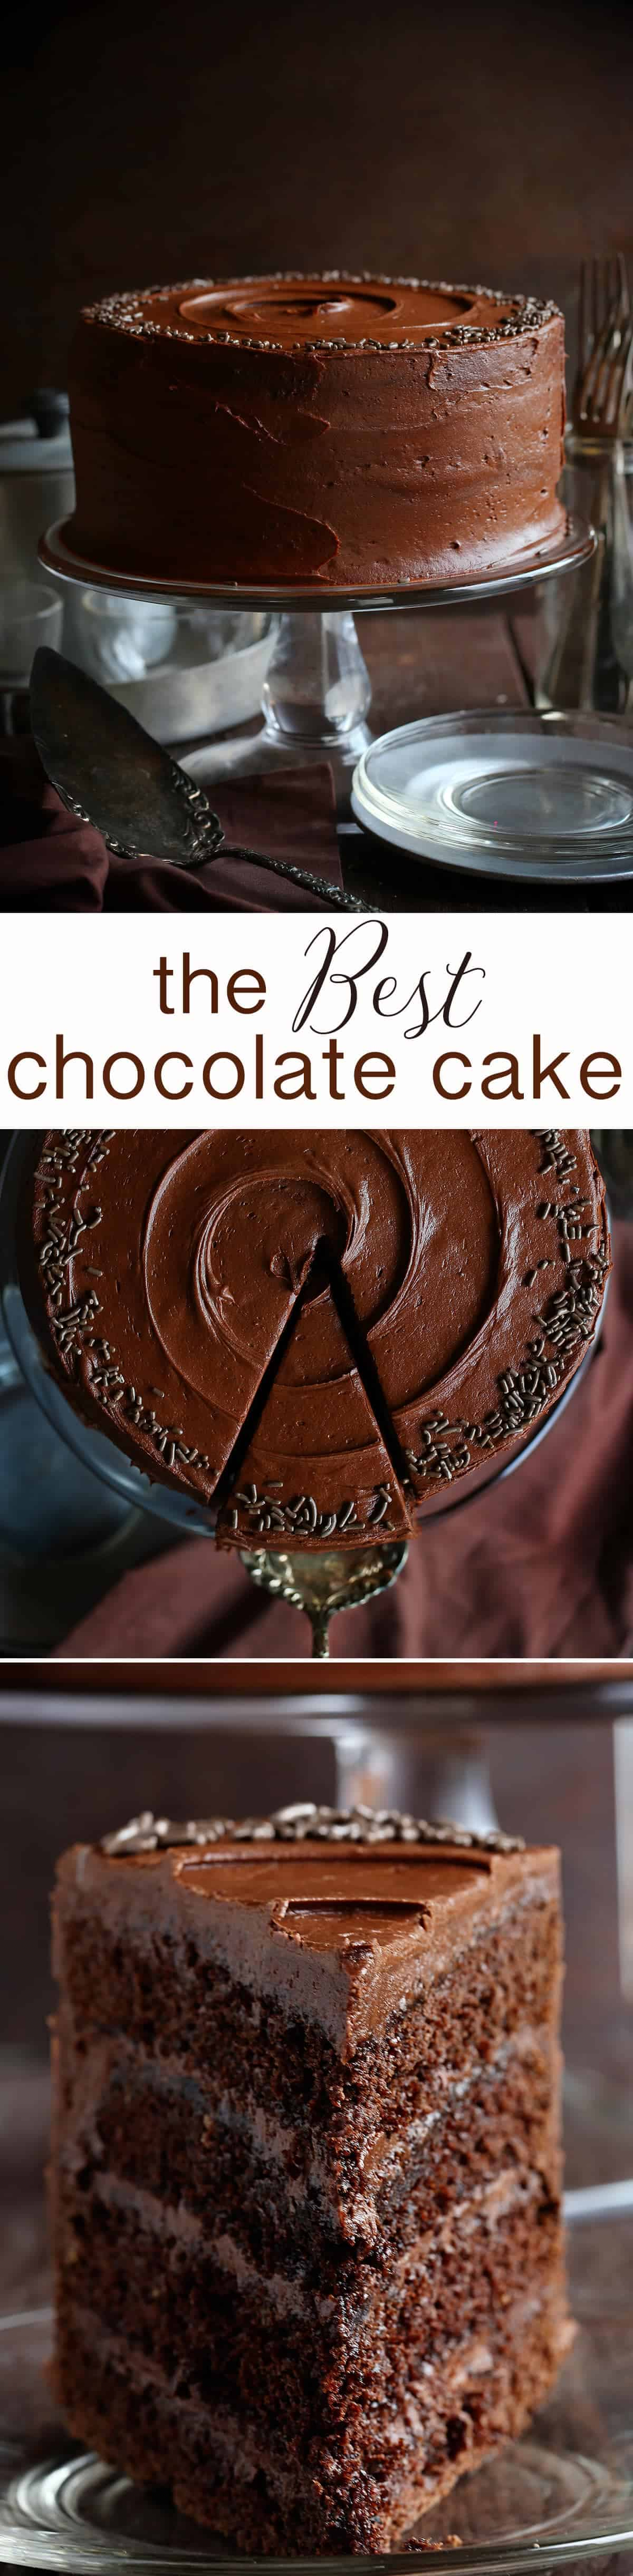 You will NEVER guess what is added to this cake to make it SO moist!